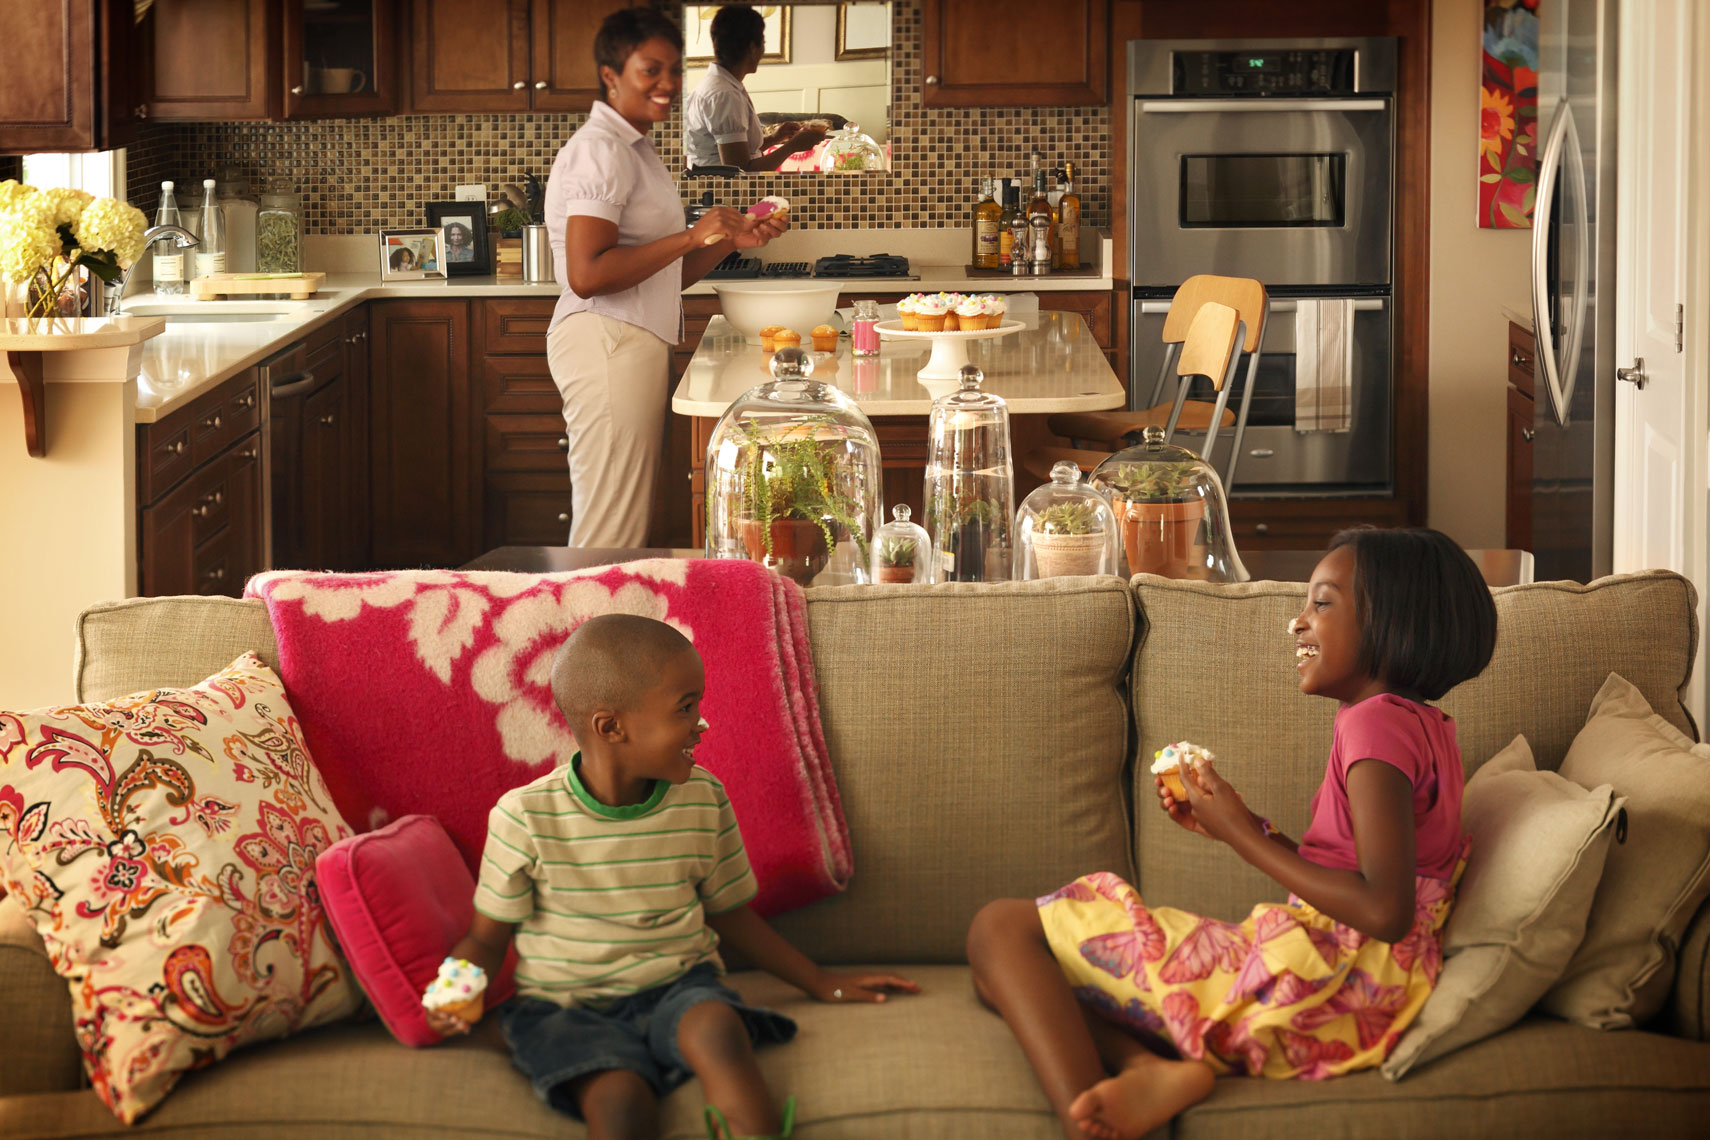 Lifestyle Architectural photography with African American family in kitchen for print advertising